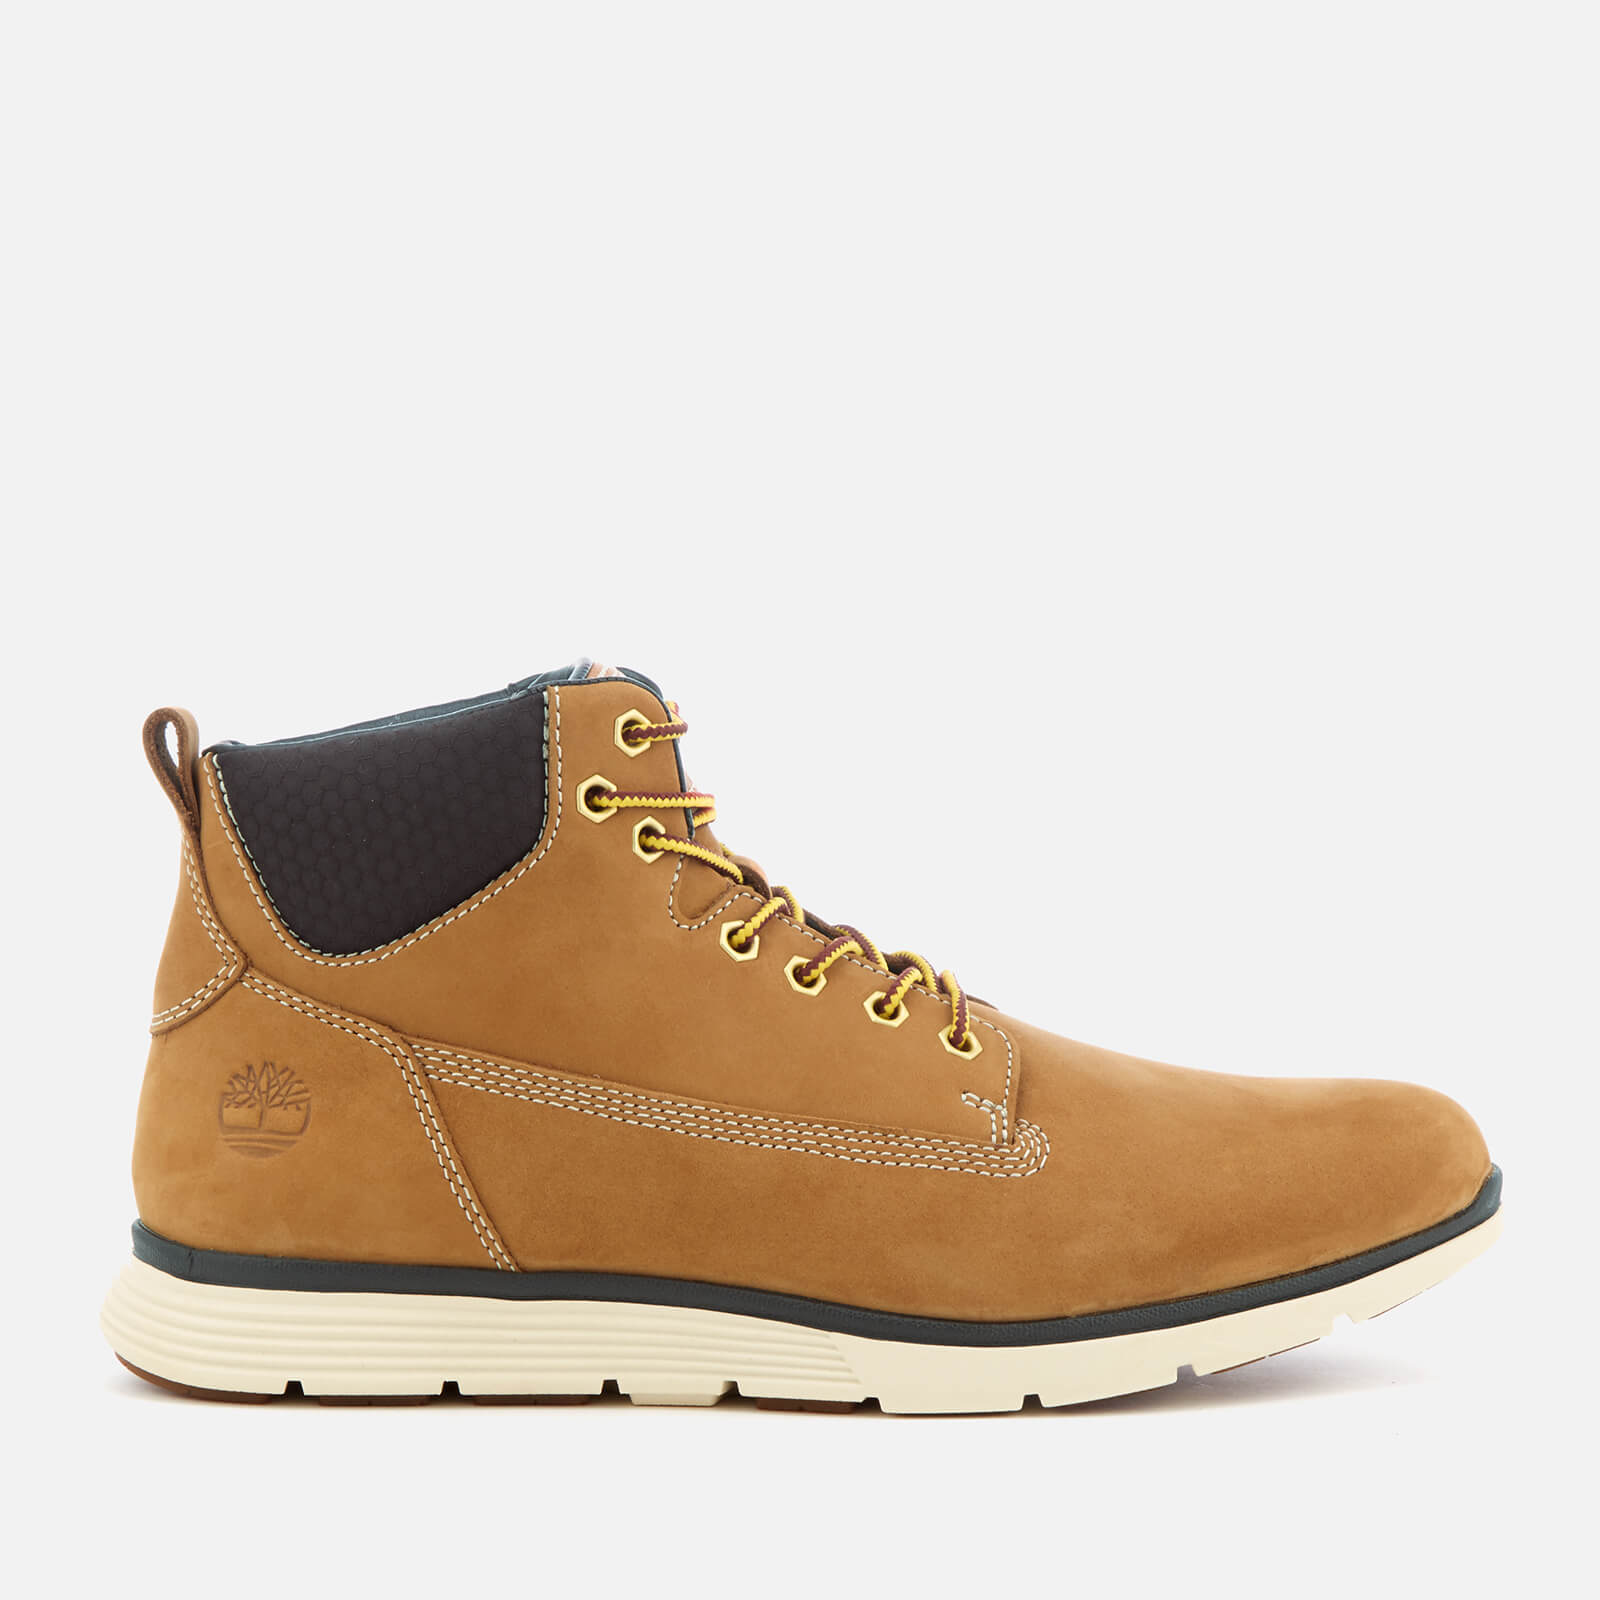 reputable site info for online store Timberland Men's Killington Chukka Boots - Wheat